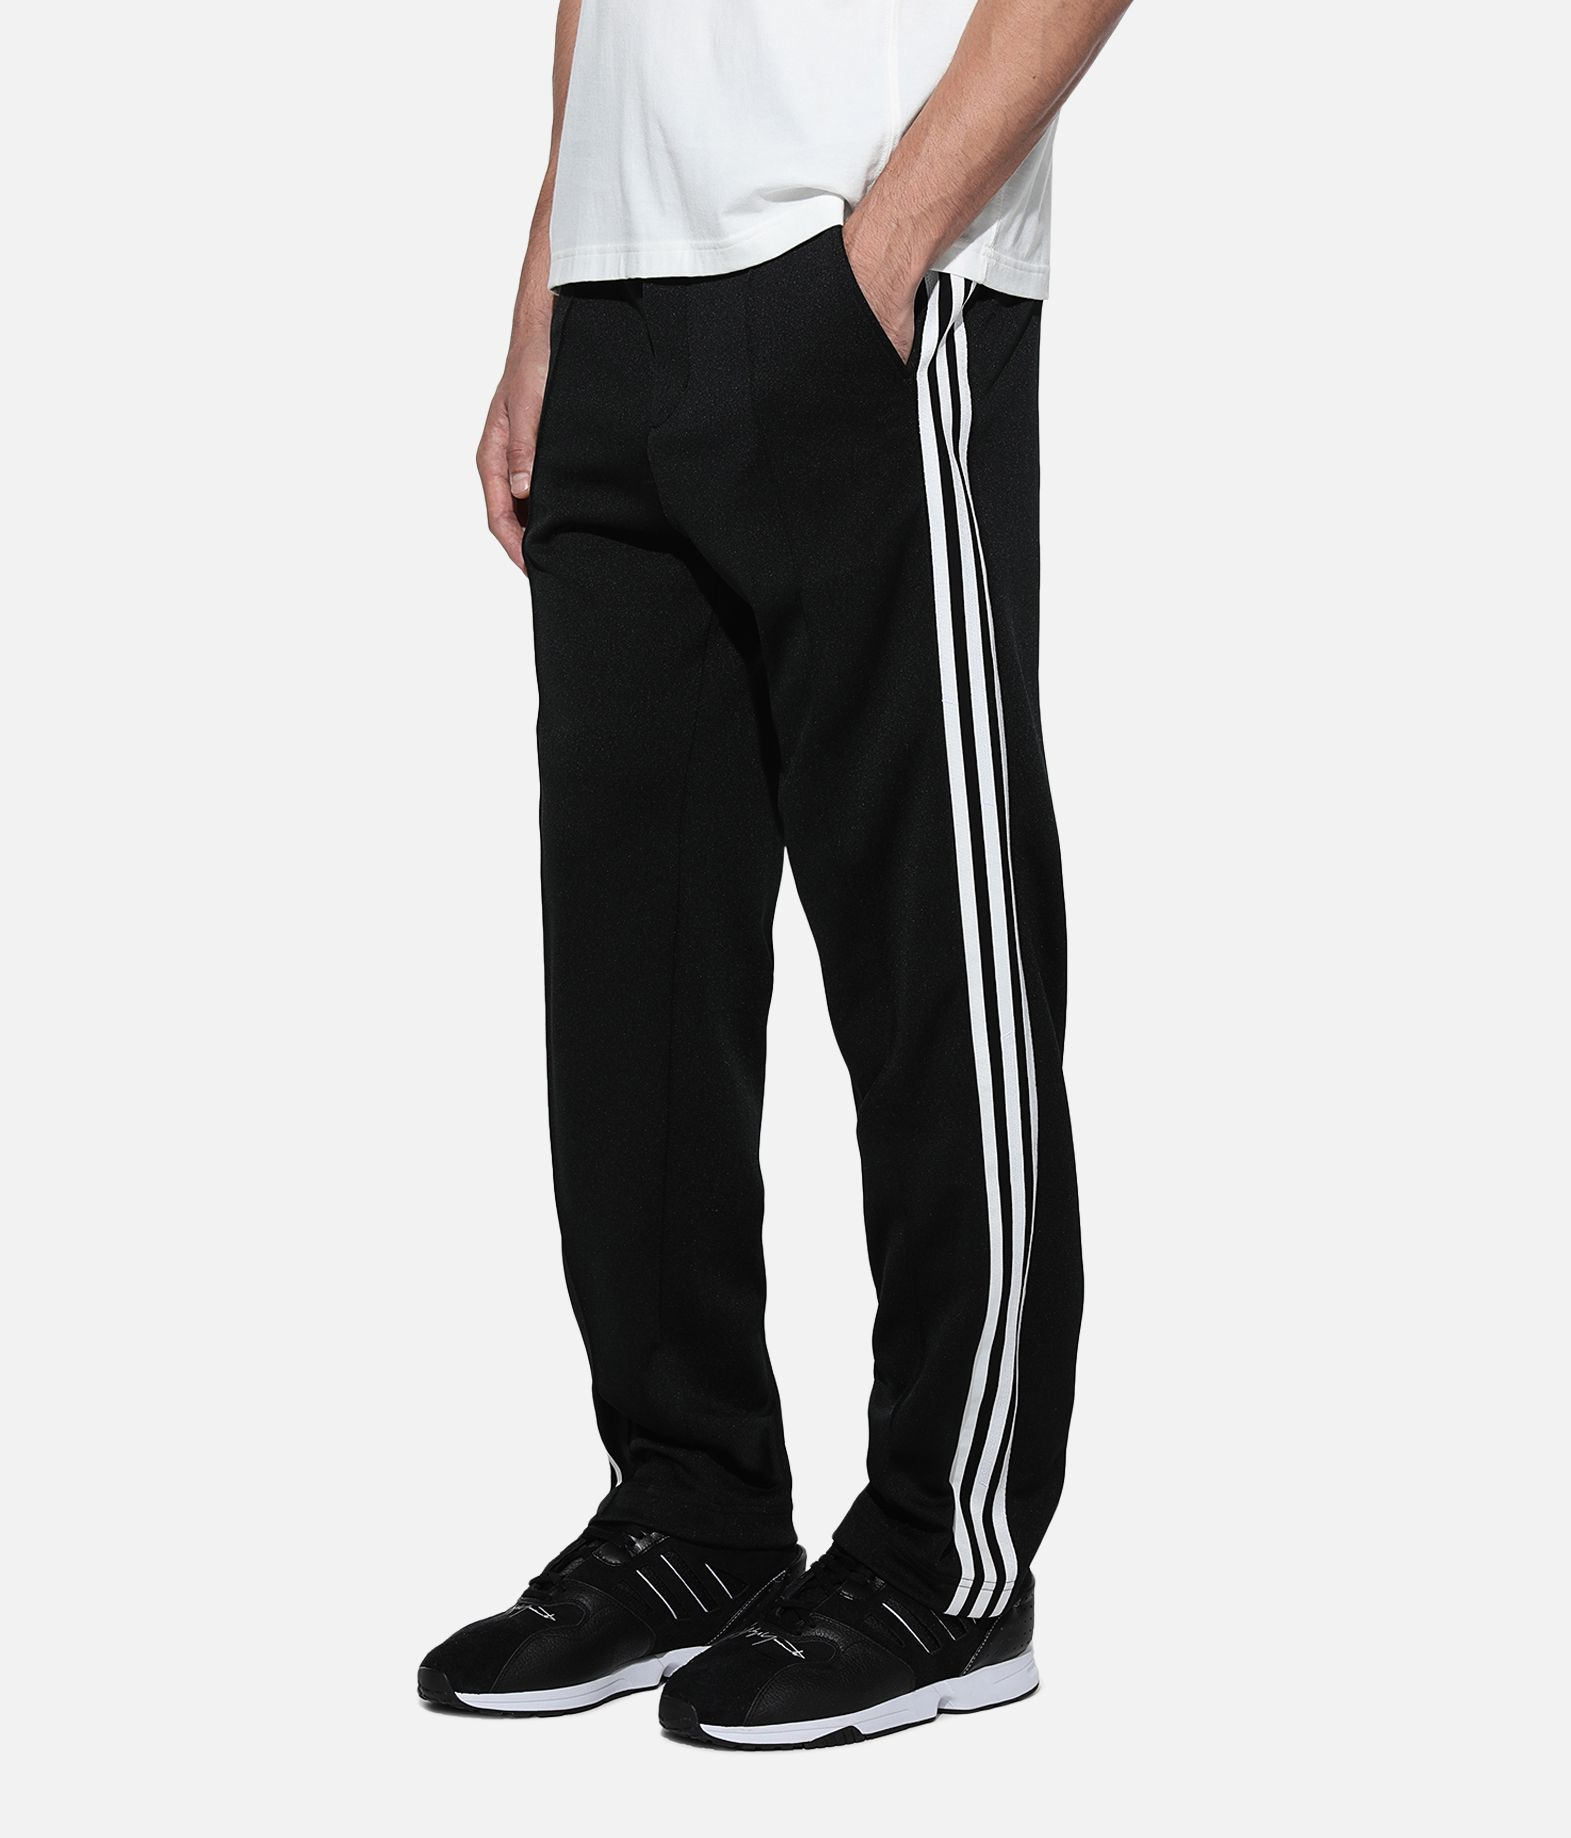 Y-3 Y-3 3-Stripes Track Pants Tracksuit bottoms Man e